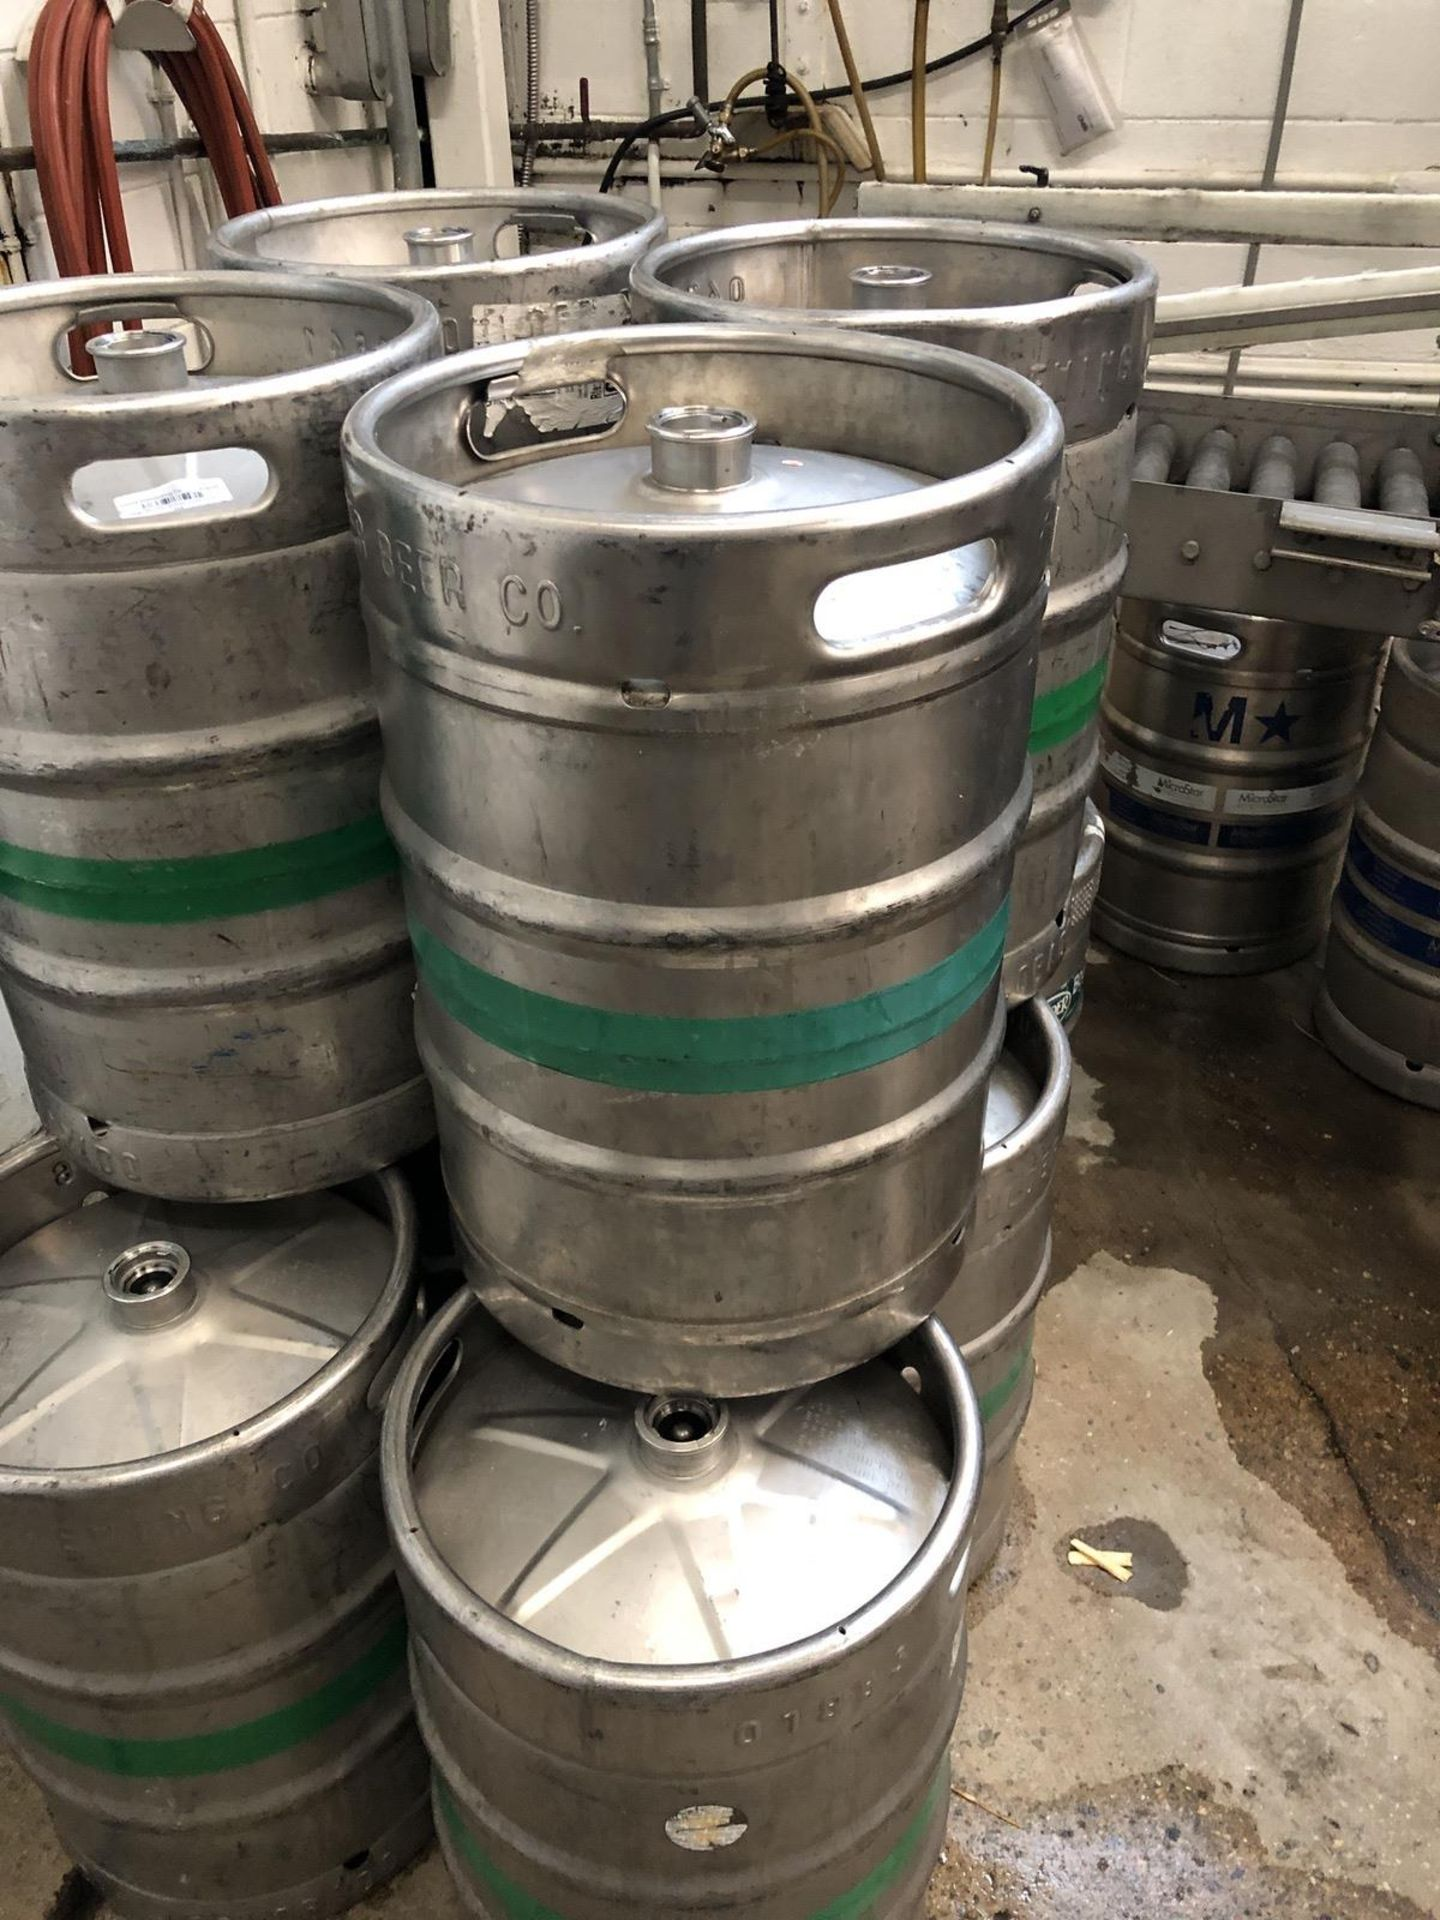 Lot 60 - See Lots 61A through 62J - Approx 1600 Half Barrel Kegs Listed Below - No Bids Accepted on This Lot